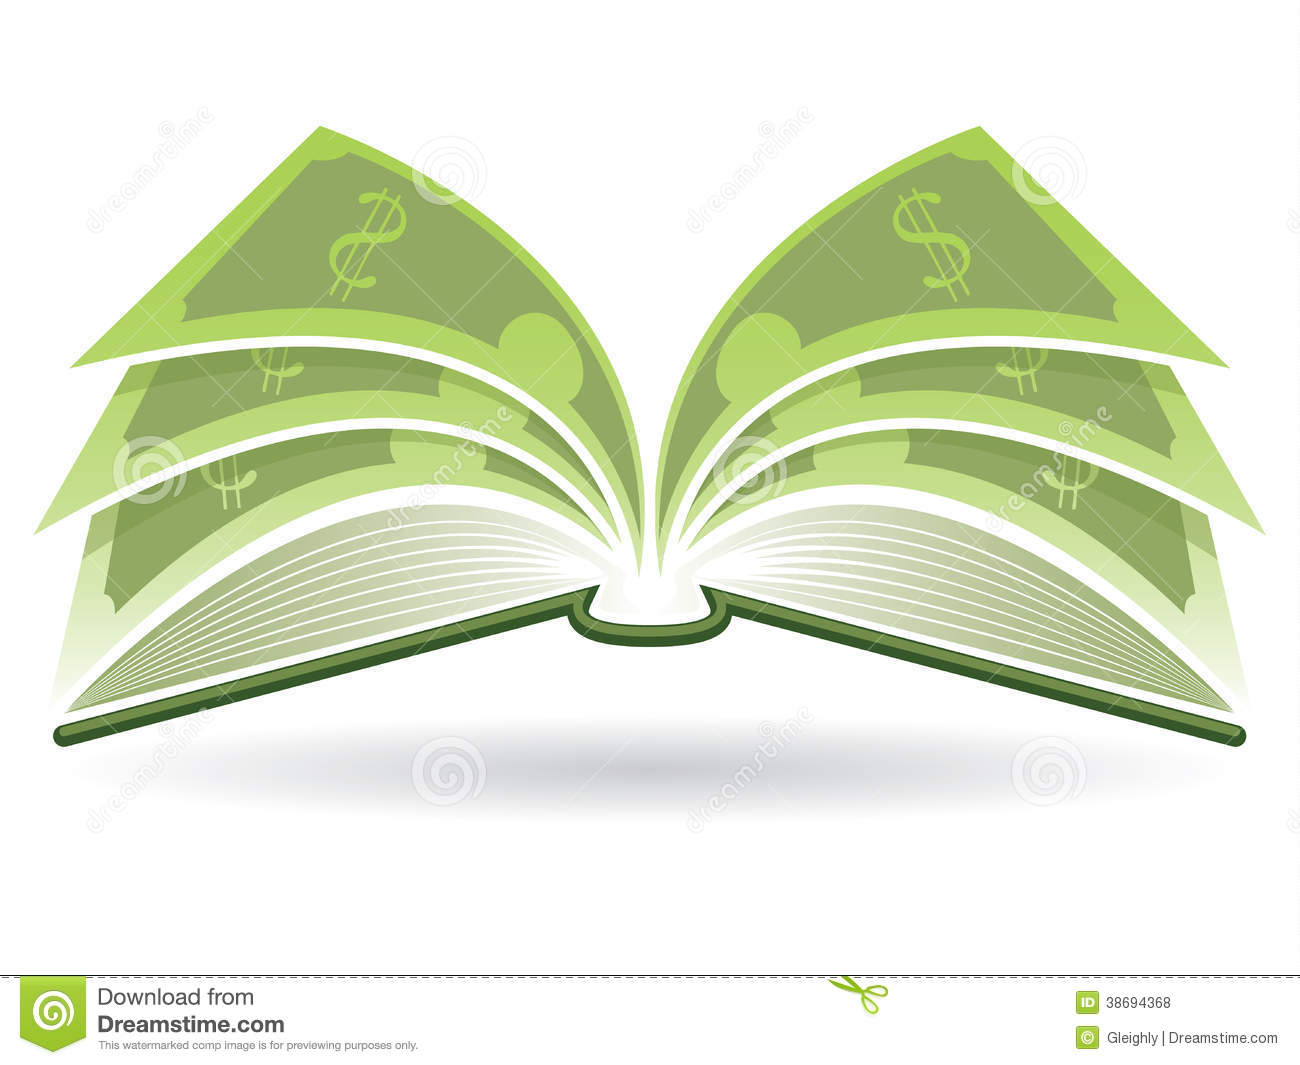 how to make money in stocks ebook free download